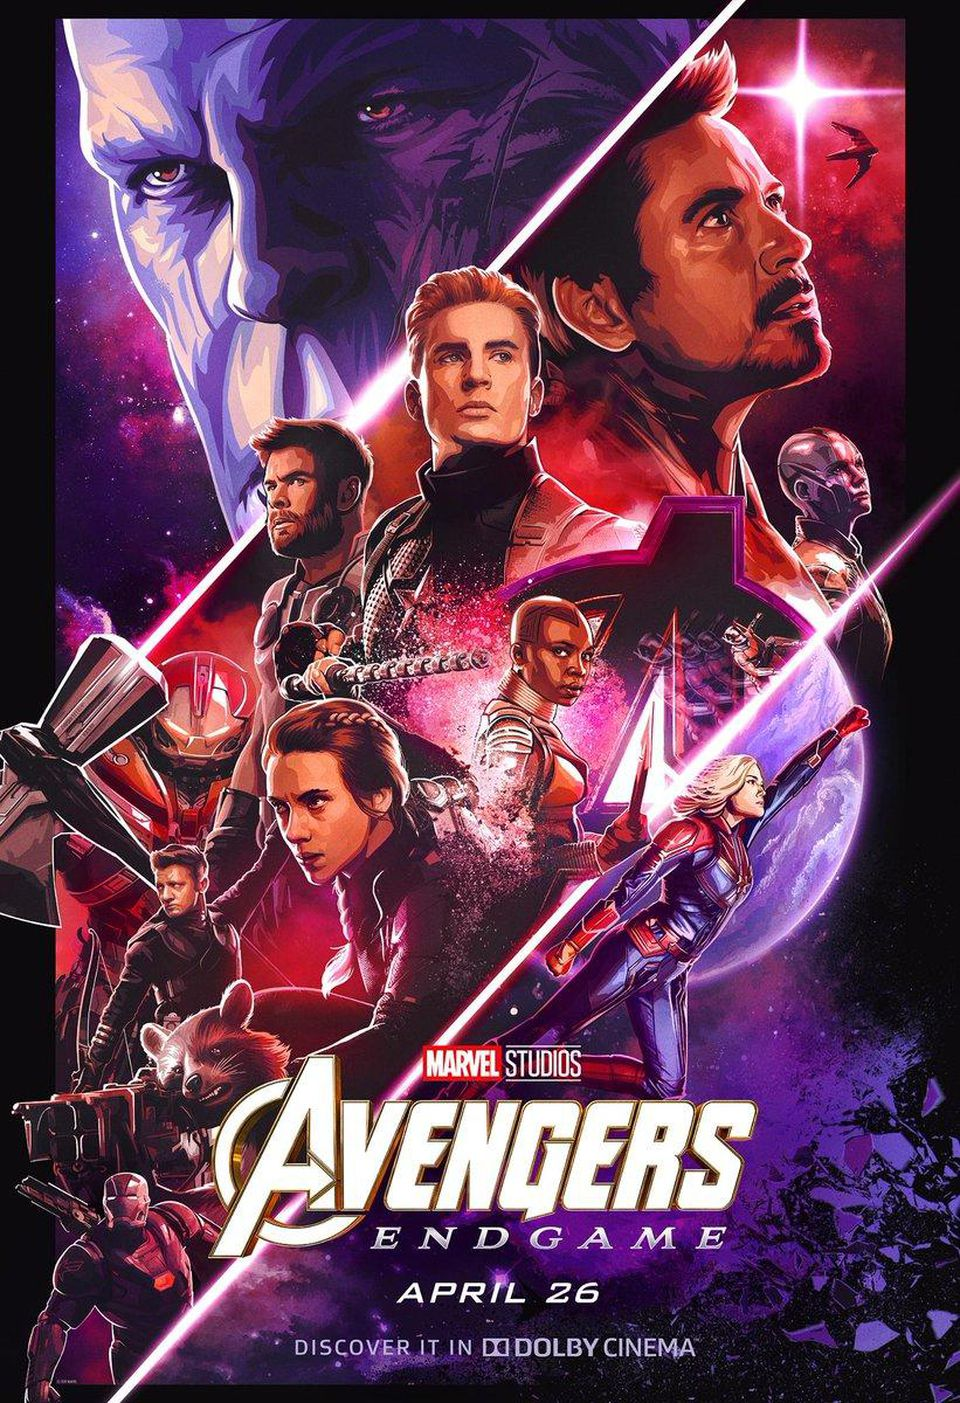 https---blogs-images.forbes.com-markhughes-files-2019-04-AVENGERS-ENDGAME-poster-DOLBY-CINEMA